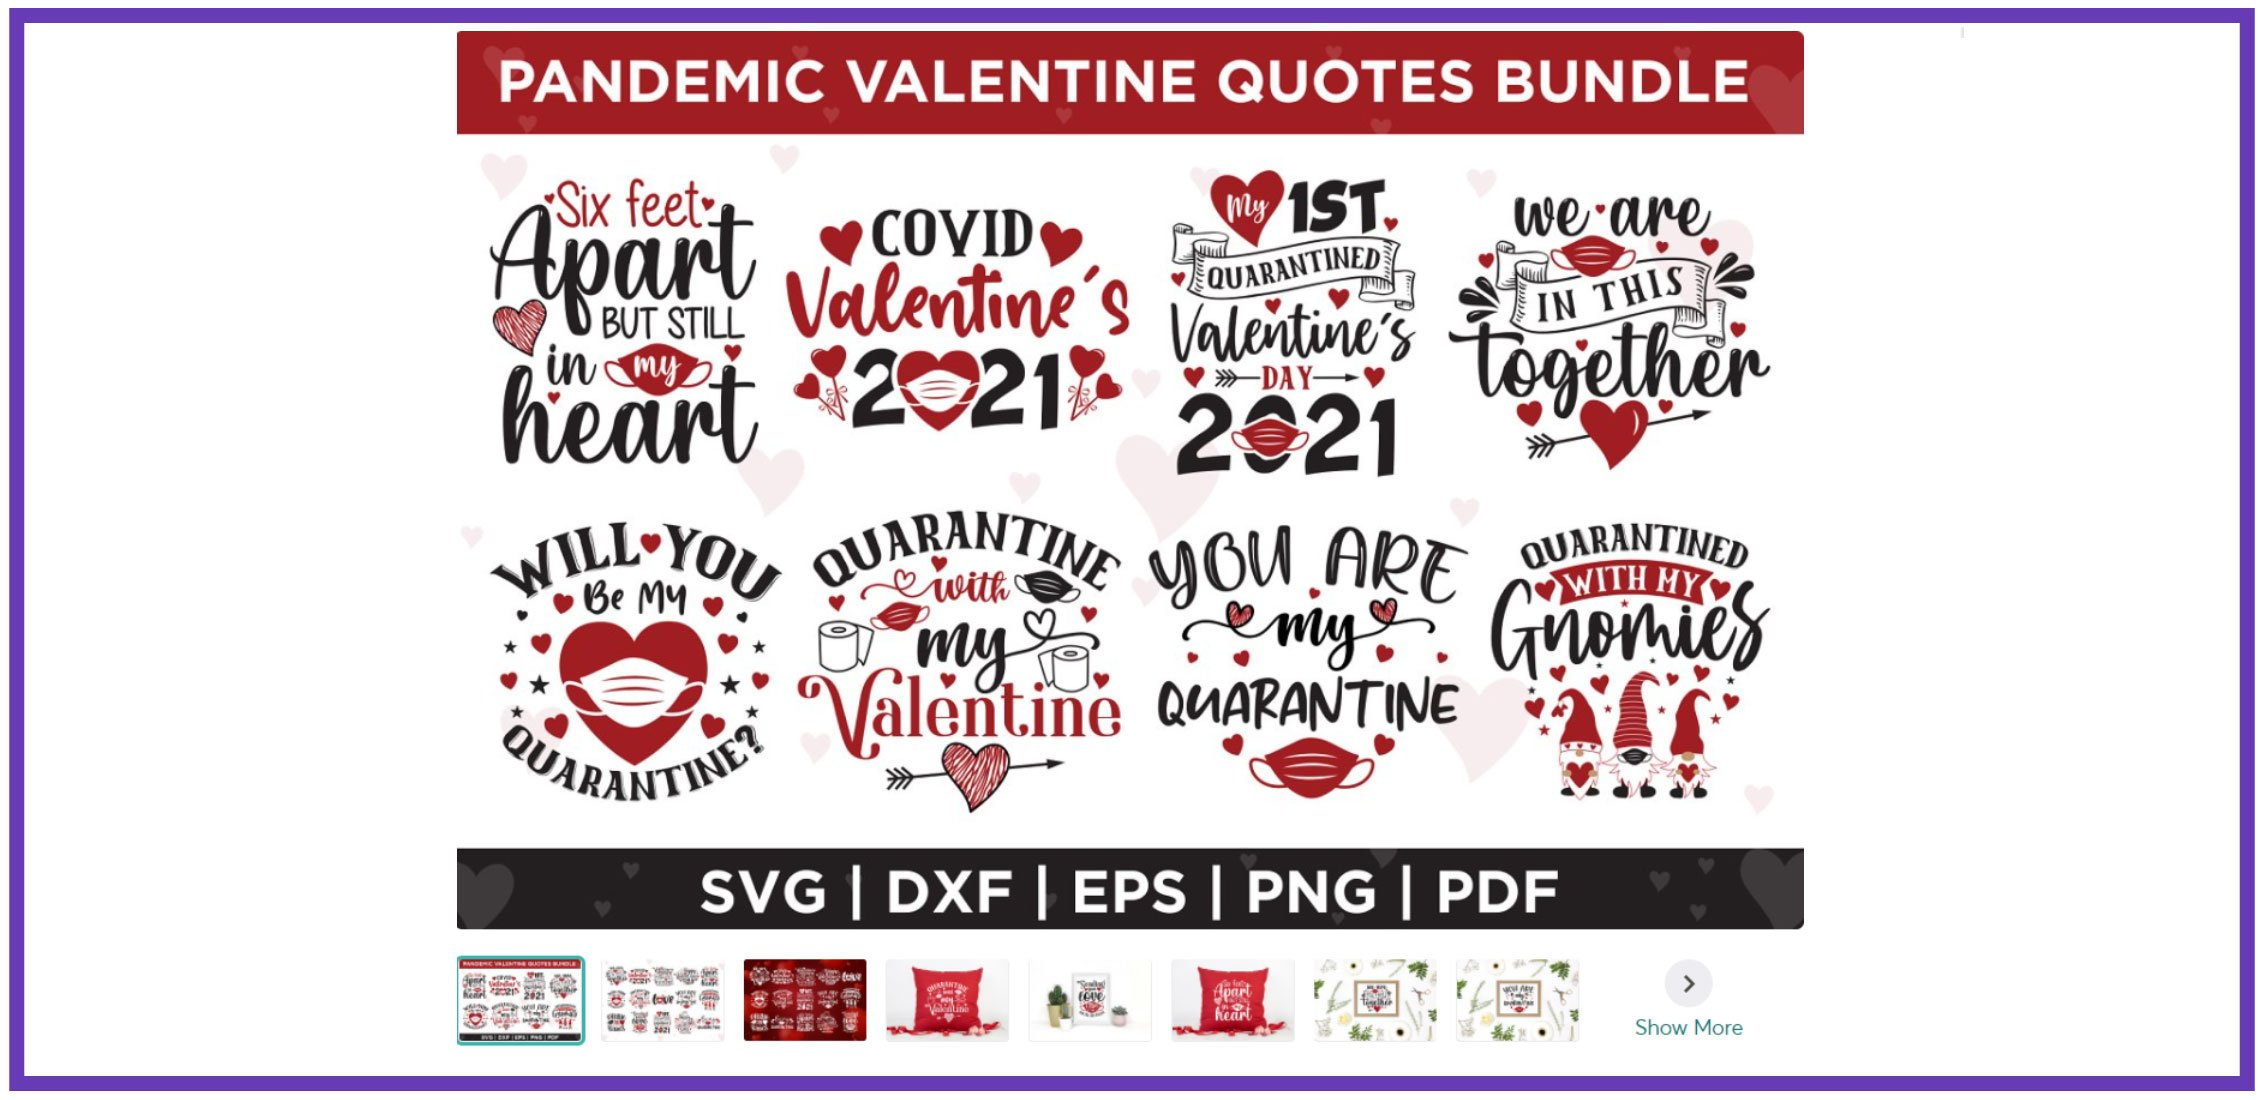 80+ Valentine's Day Shirts. Best T-shirt Designs Ideas For St. Valentine's Day - valentines day shirt design 4